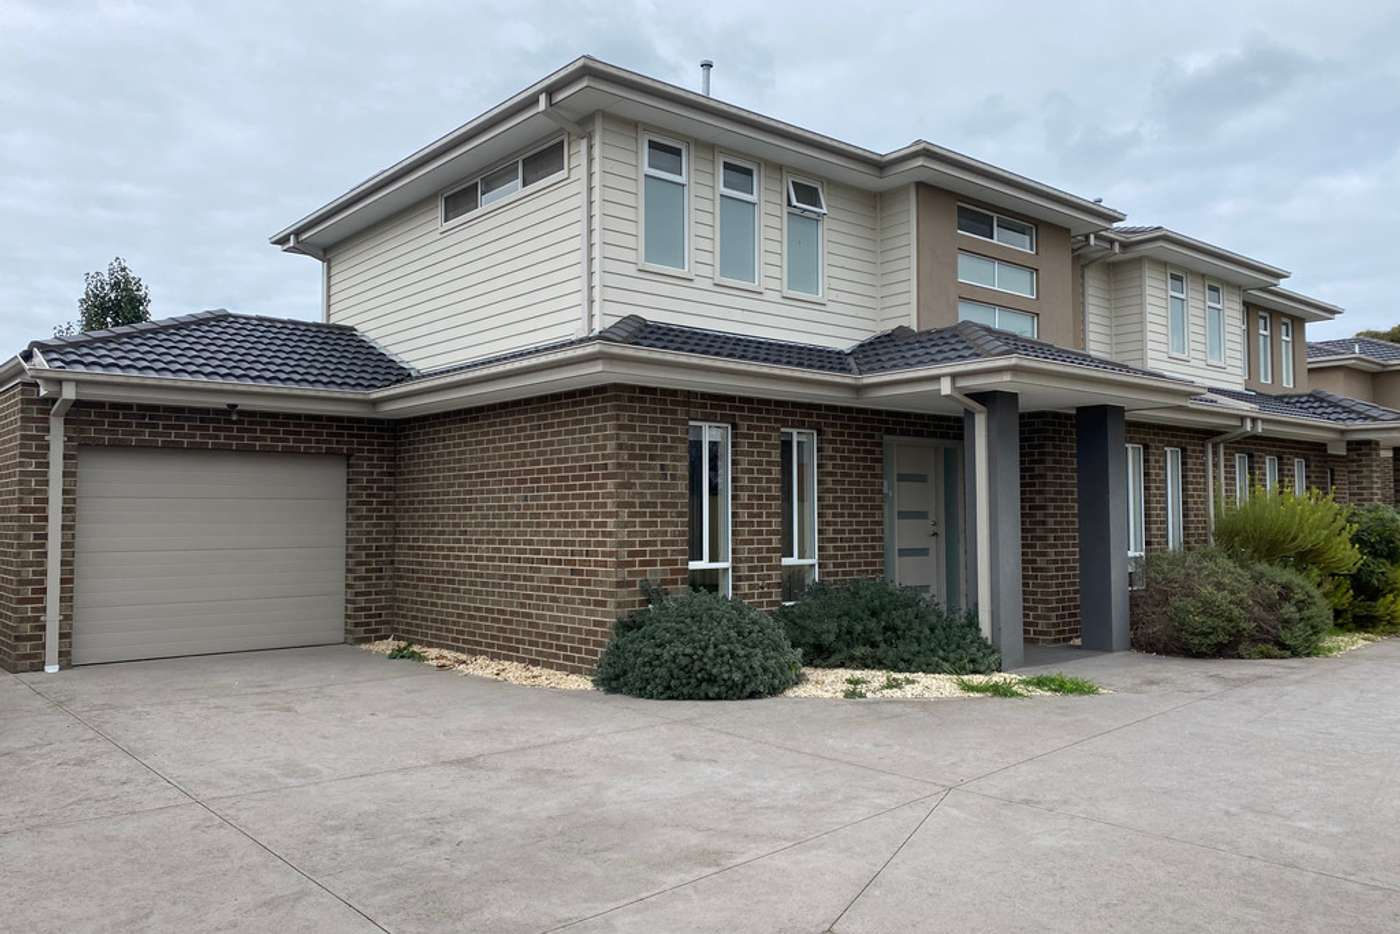 Main view of Homely townhouse listing, 3/73 Linnet Street, Altona VIC 3018